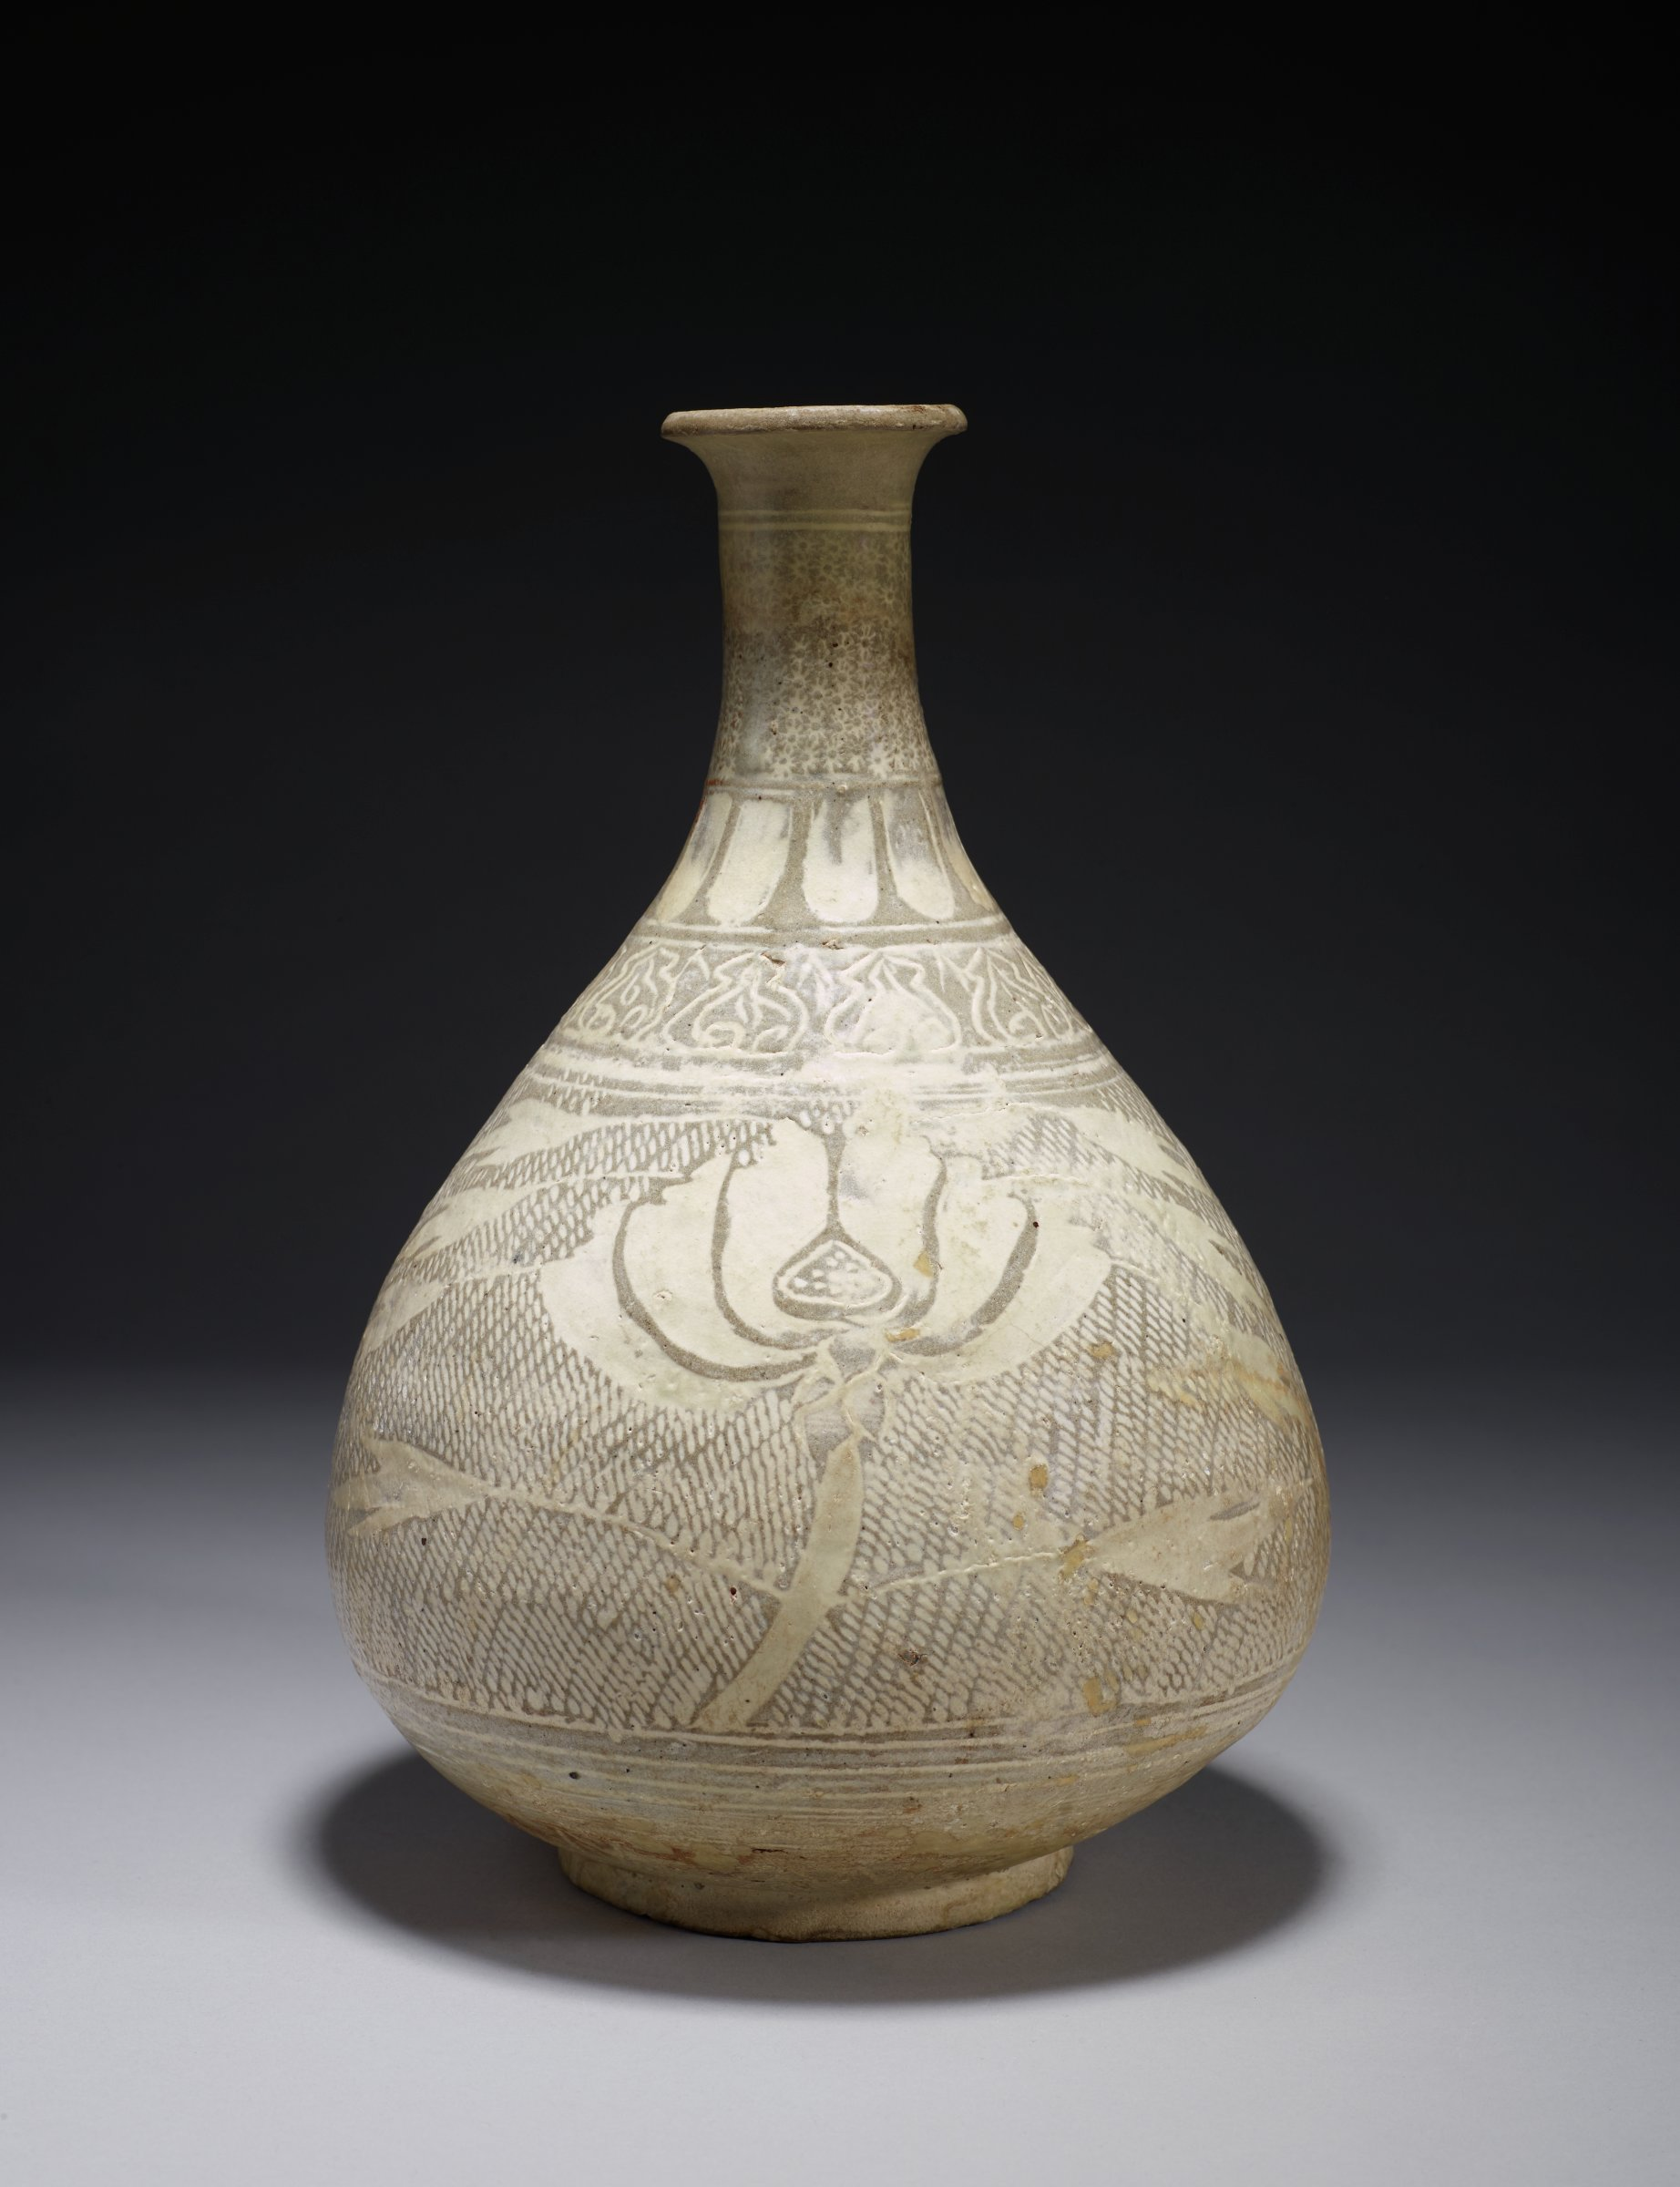 Pear-Shaped Bottle with Long Neck and Peony and Petal Motif. Star/Jasmine(?) flowers on neck under clouded glaze. Deeply carved leaf ring. Reddish clay underneath.